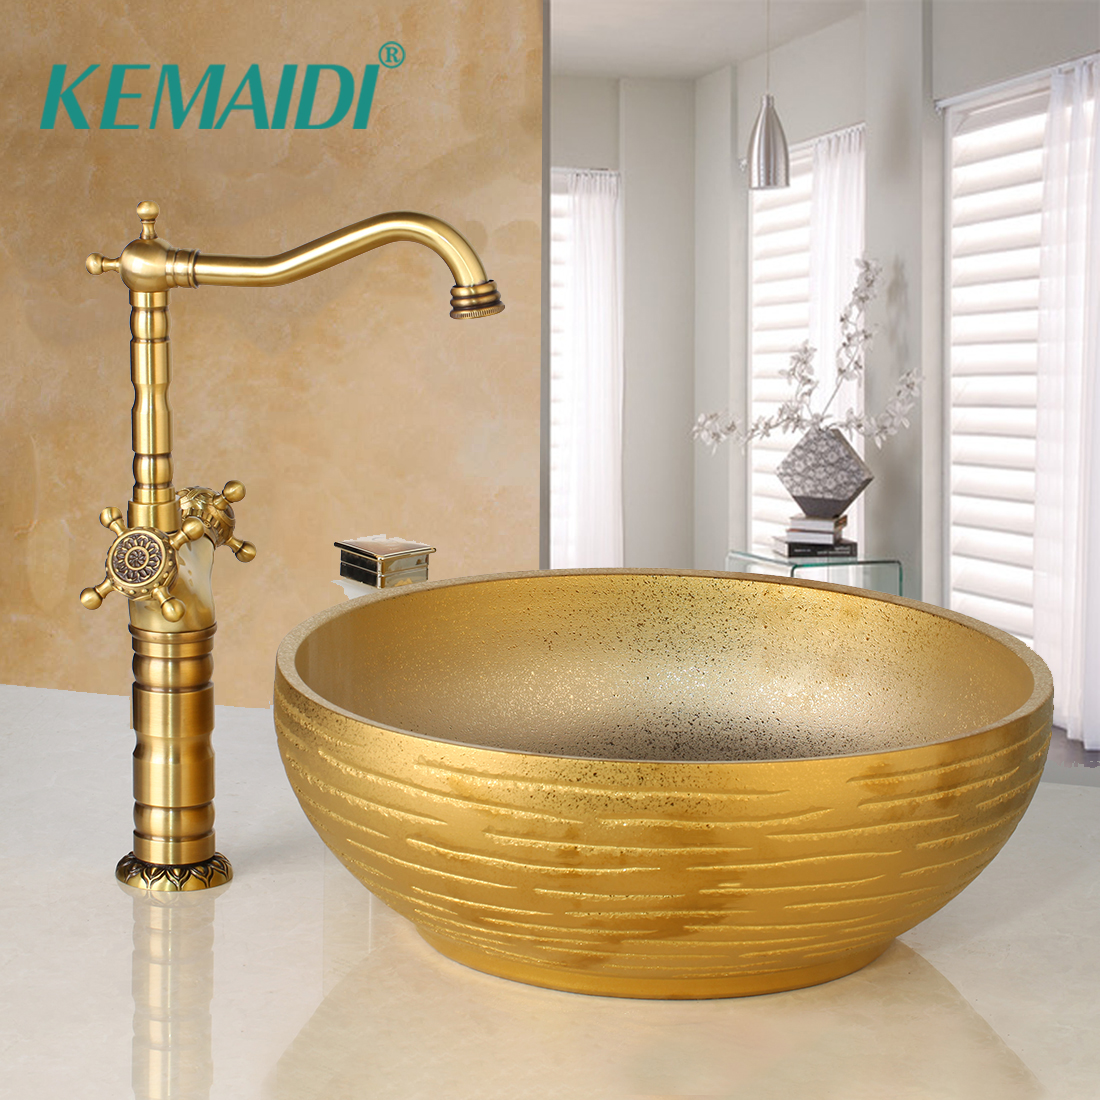 KEMAIDI Bathroom Ceramic Basin Faucets Sets Hand Painted Basin Antique Brass Tap Bathroom Sink